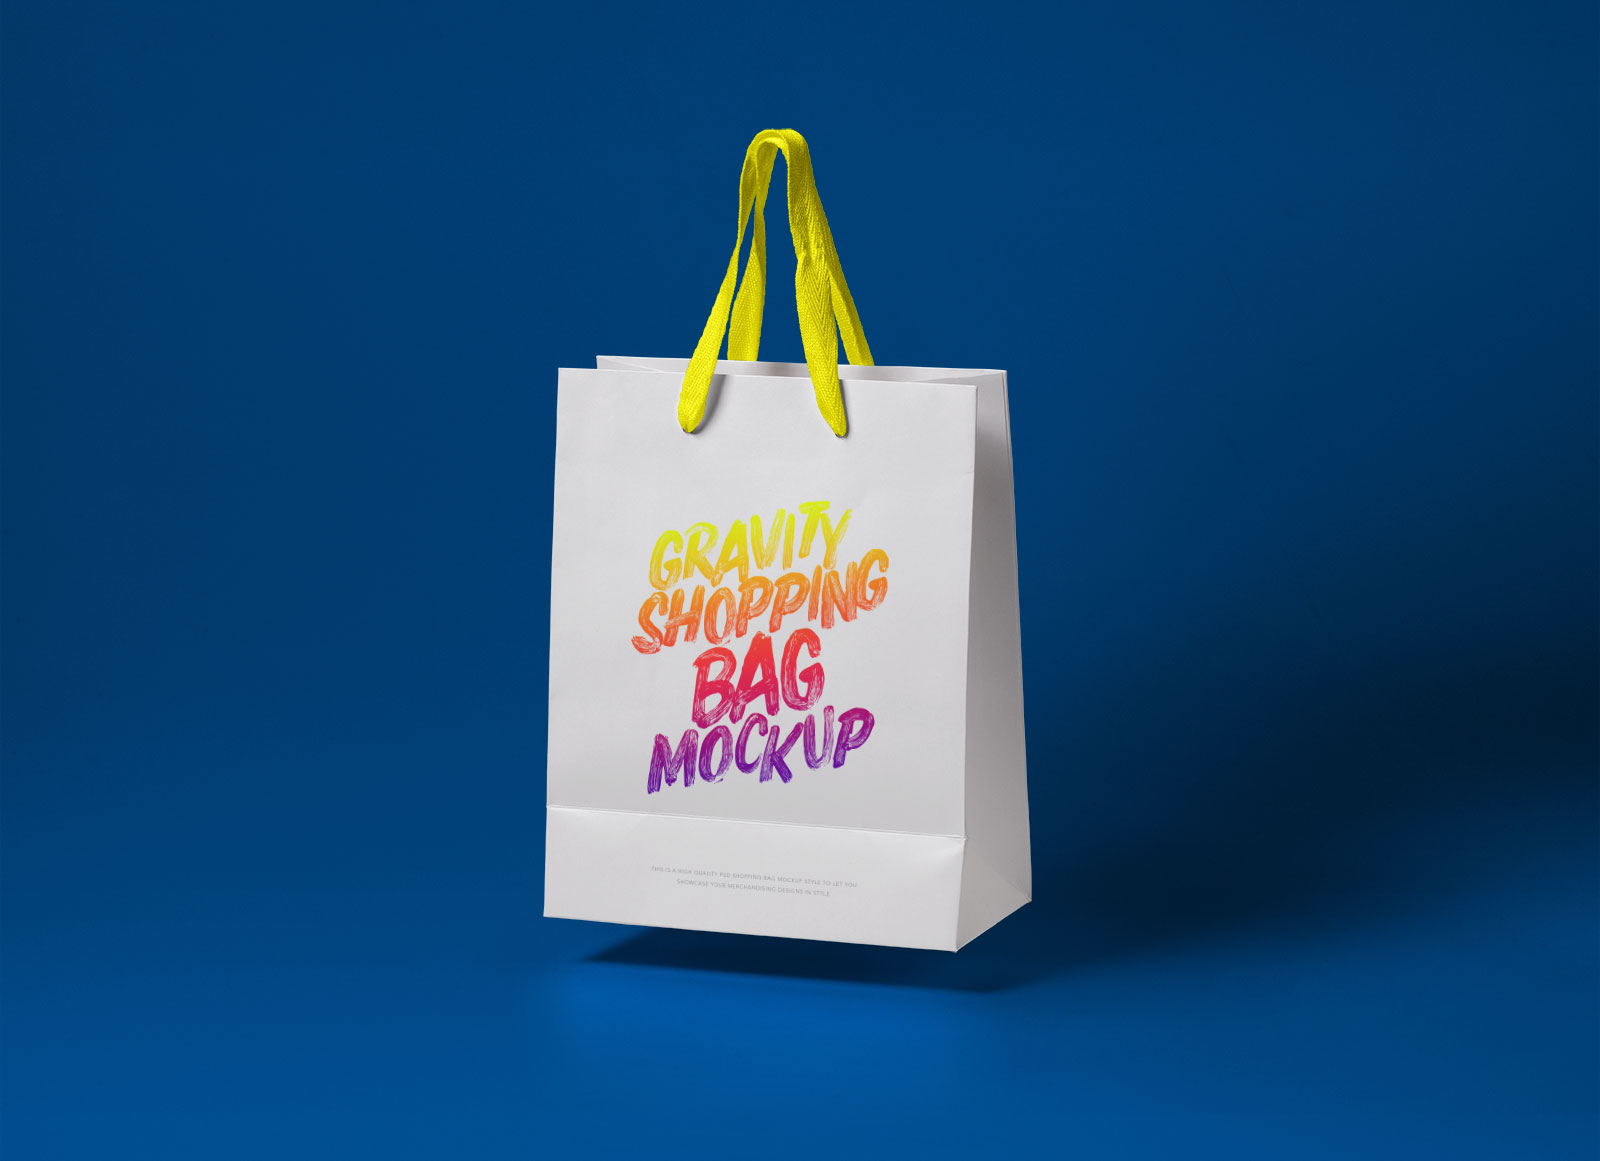 Free-Black-&-White-Floating-Shopping-Bag-Mockup-PSD-2